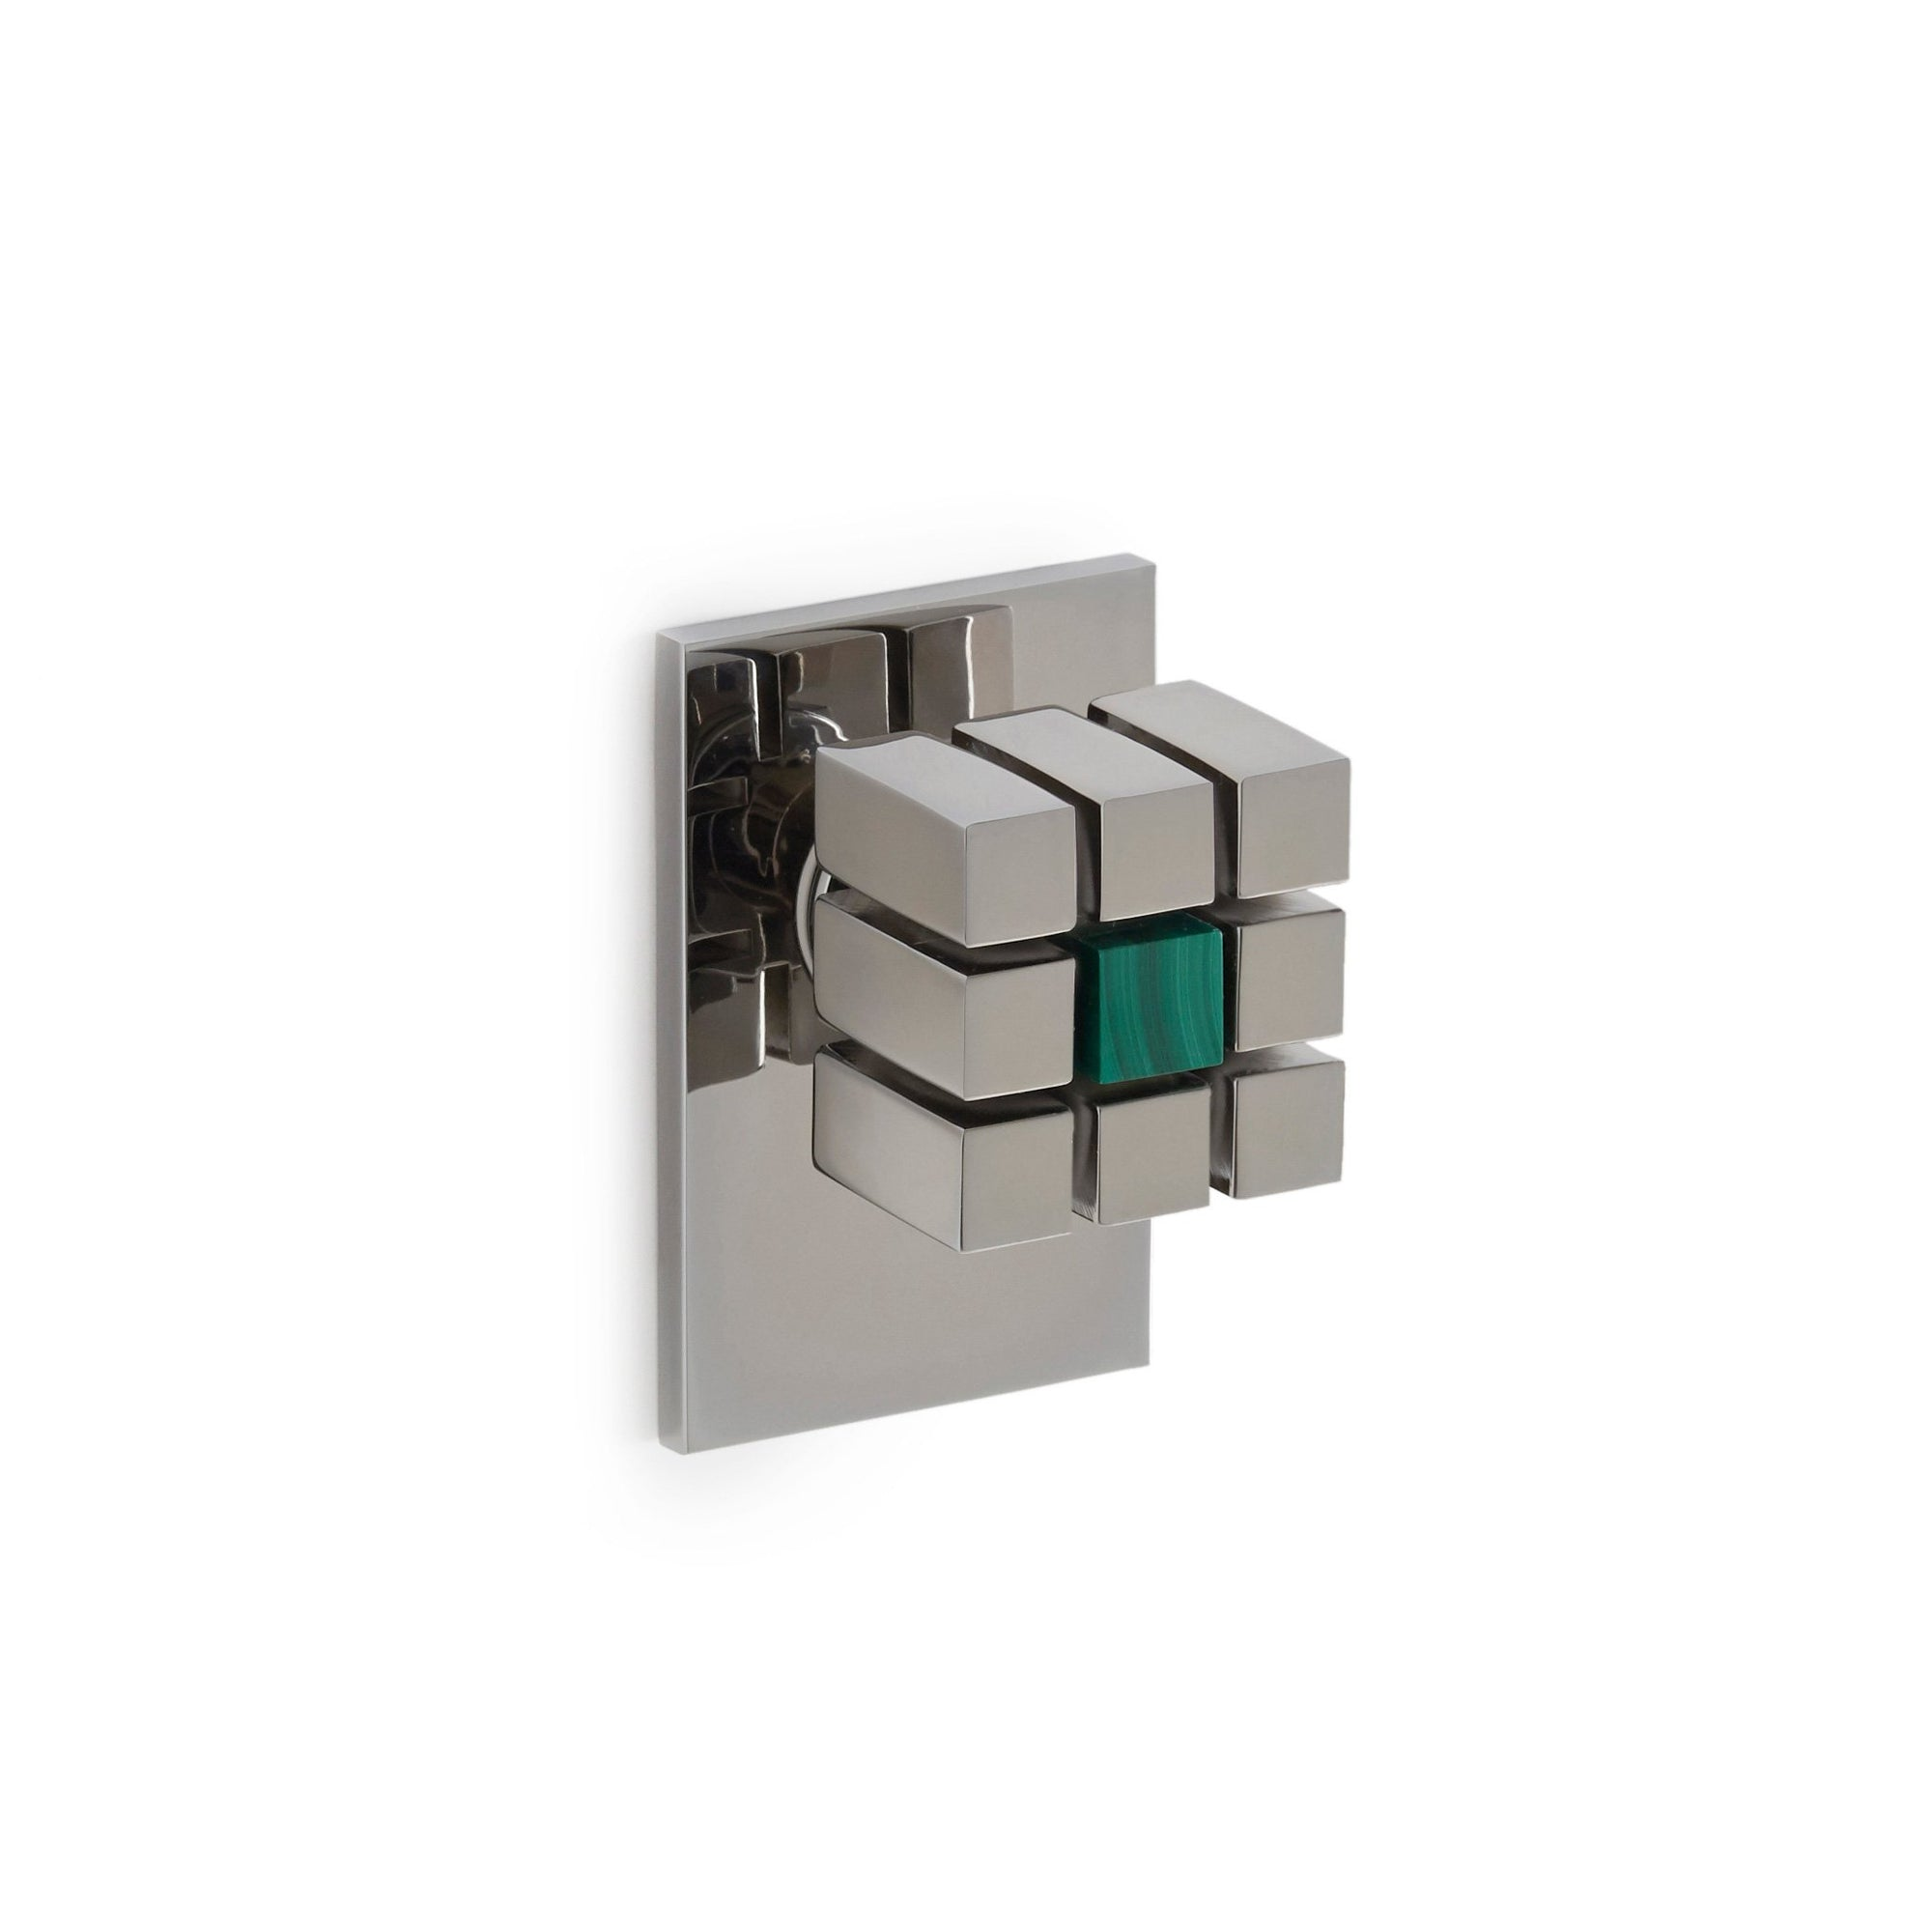 2104DOR-MALA-CP Sherle Wagner International The Stone Insert Novem Door Knob in Polished Chrome metal finish